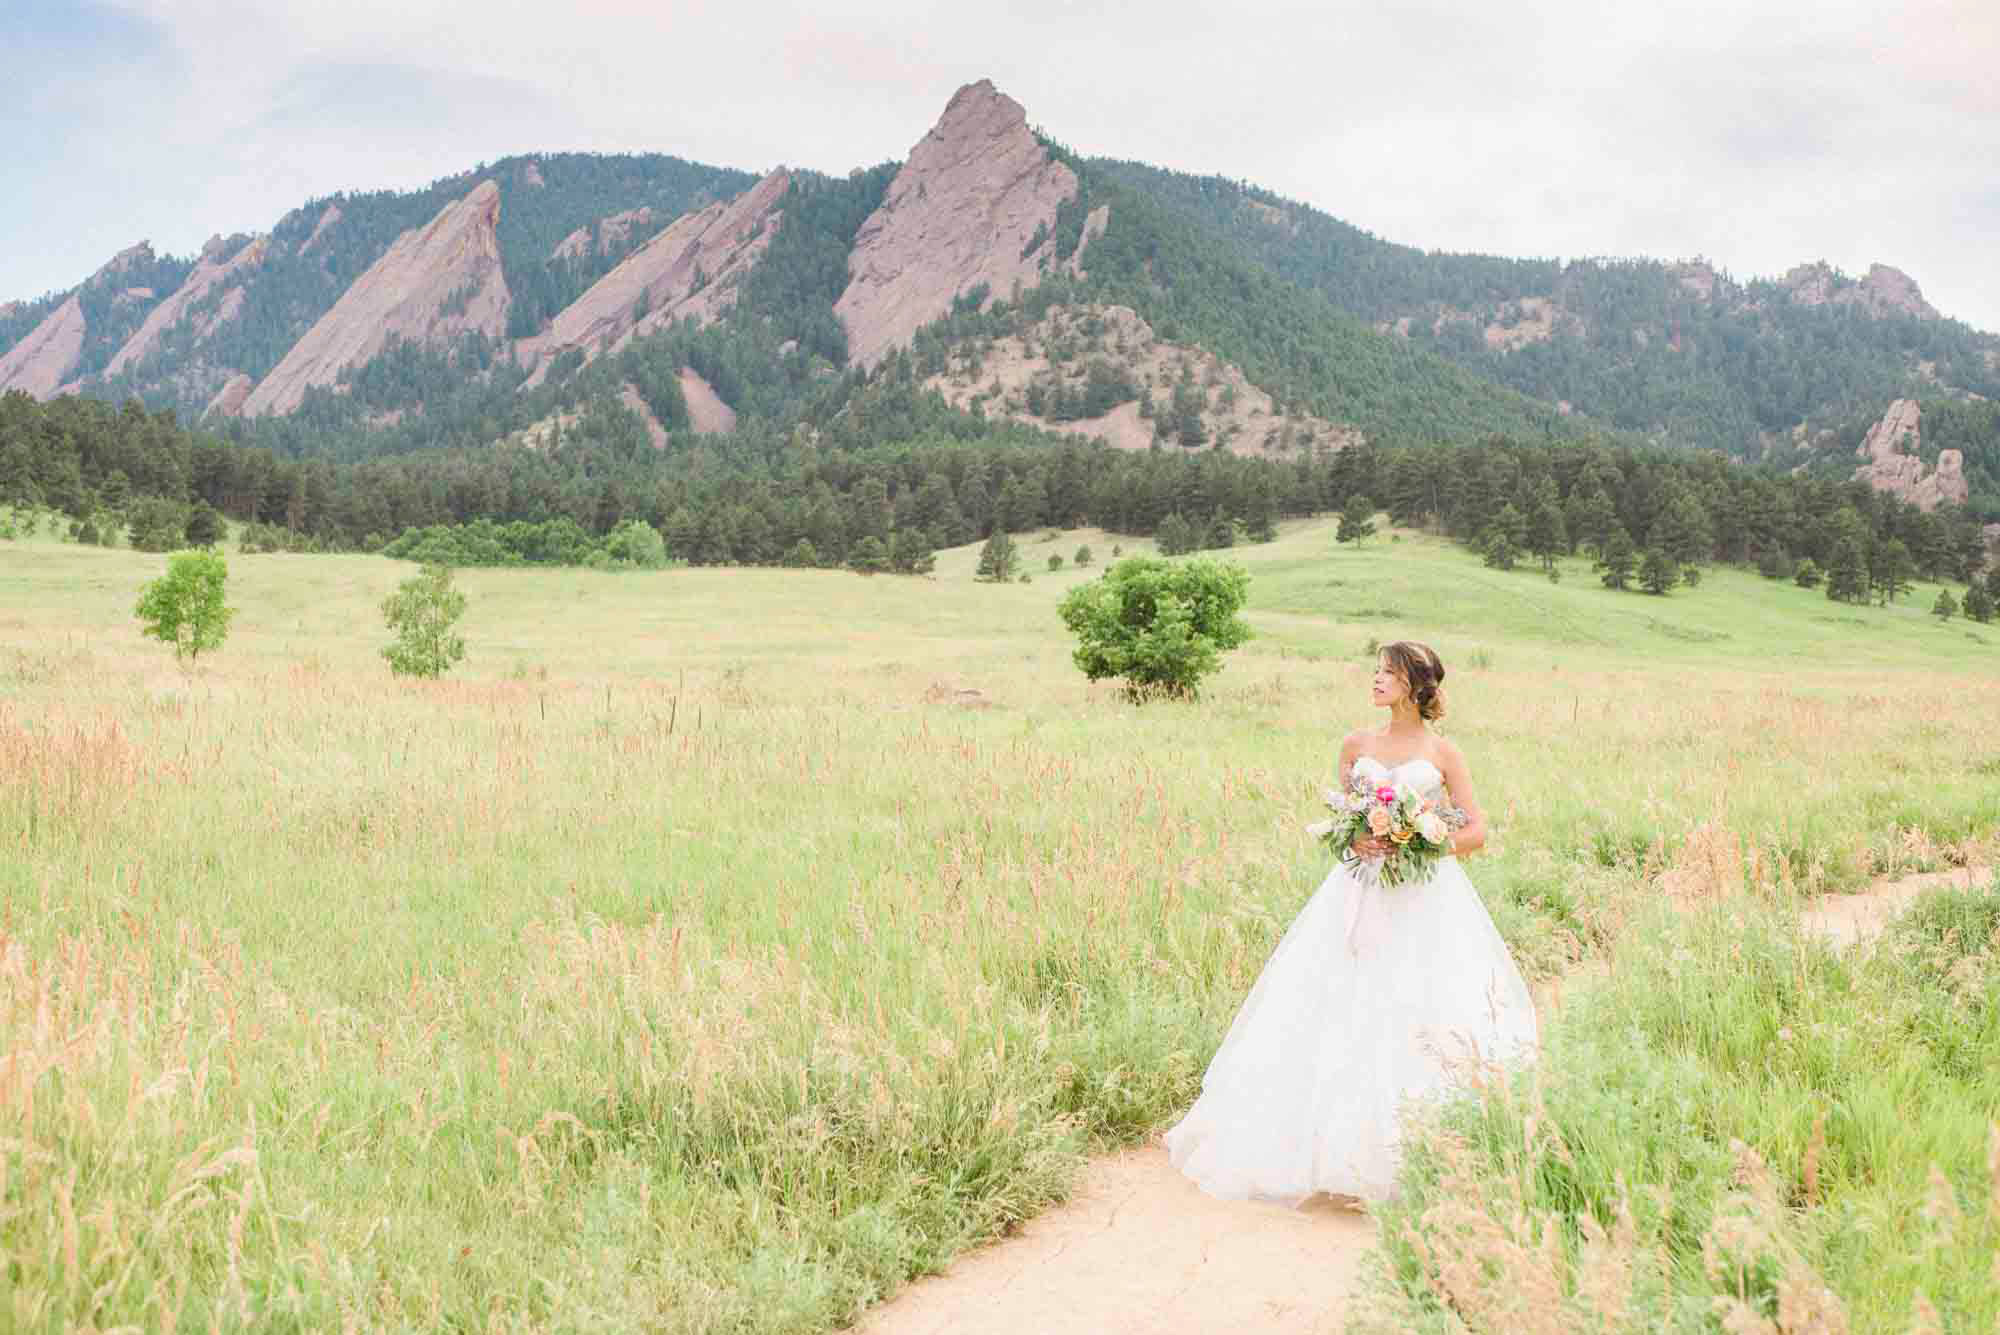 Wedding Inspiration for the Colorado Mountain Bride